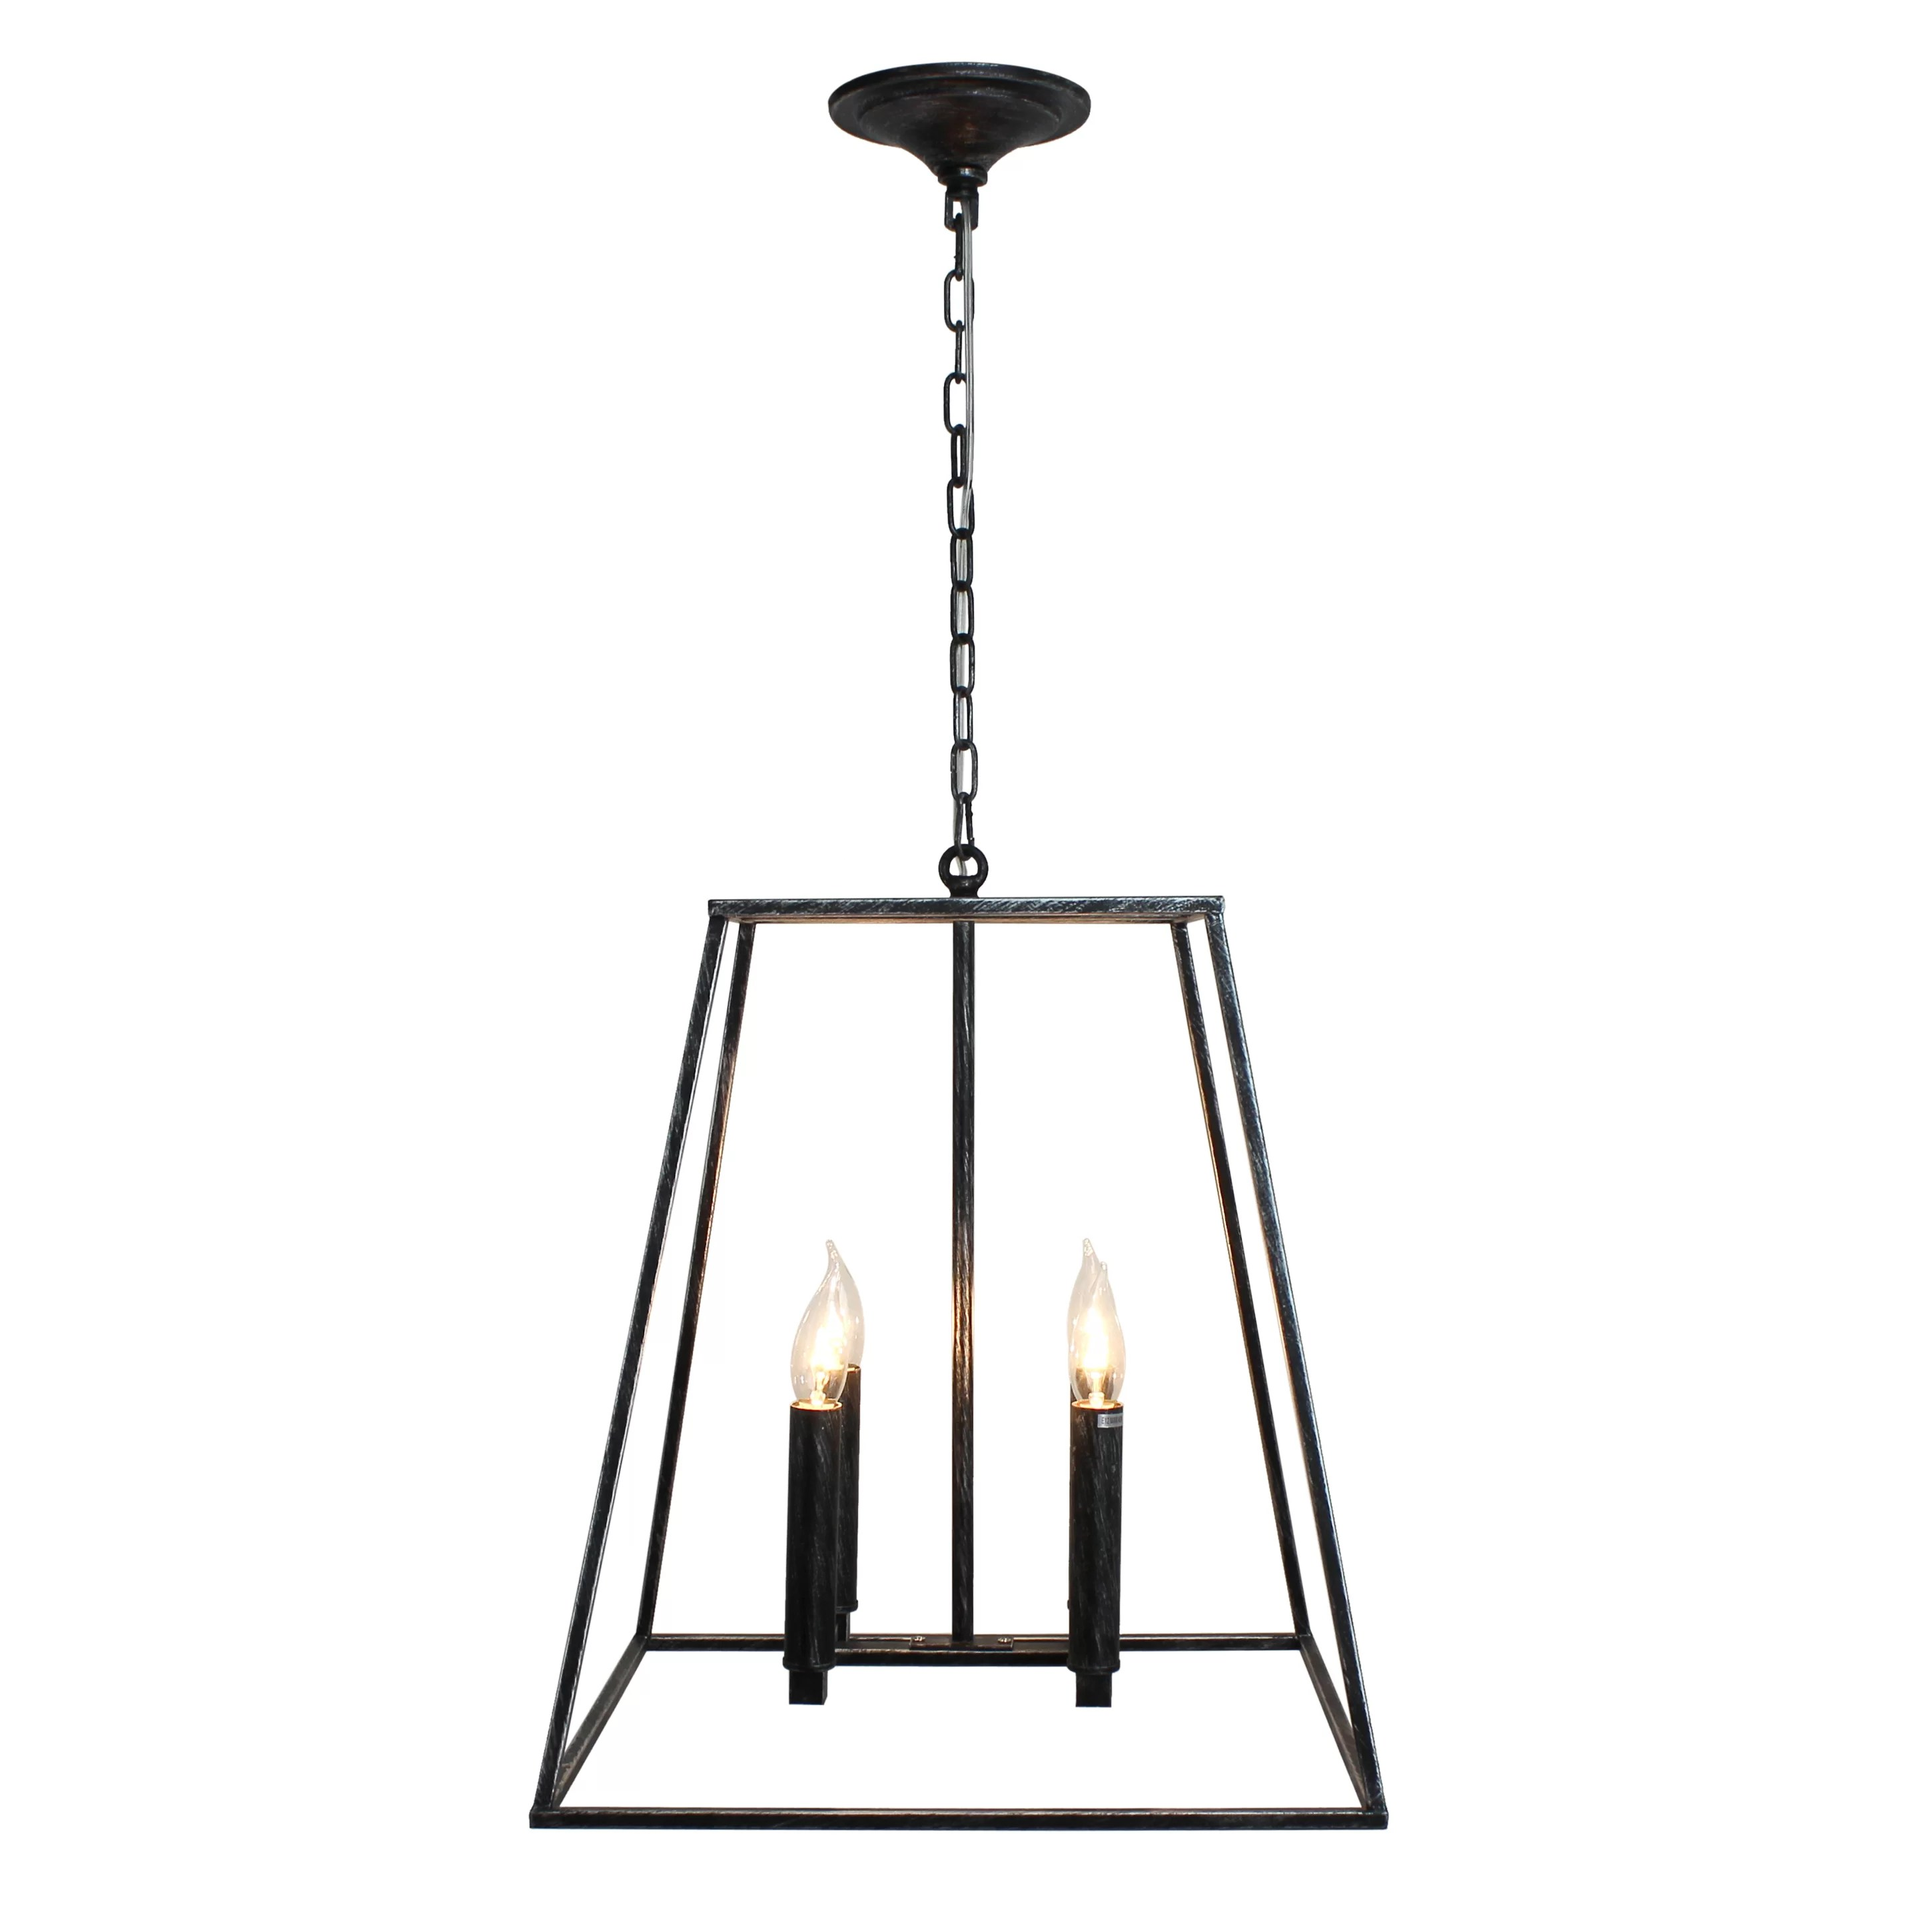 Gracie Oaks Gawon 4 Light Square Rectangle Chandelier